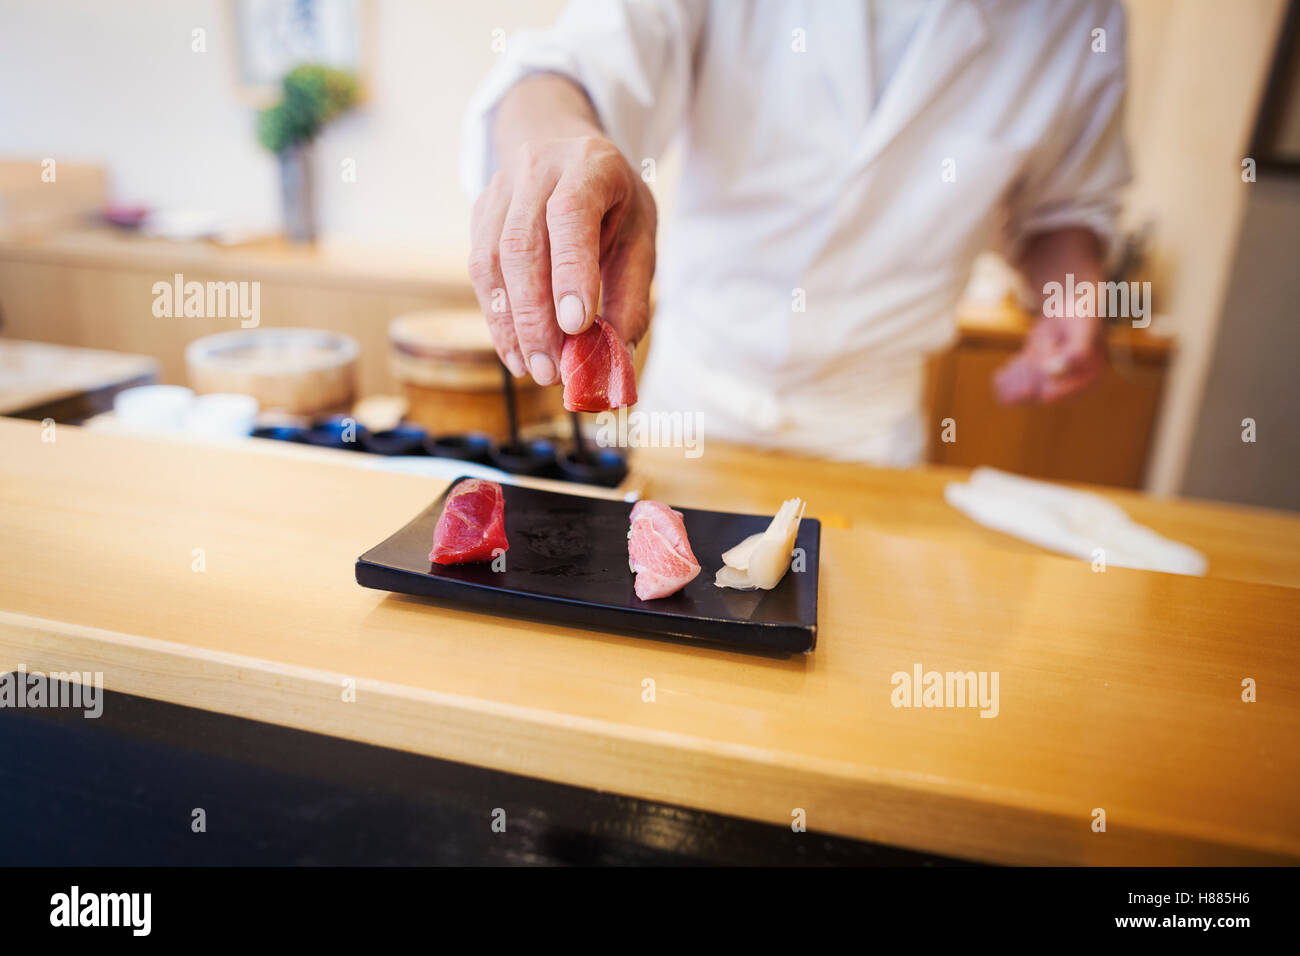 A chef working in a small commercial kitchen, an itamae or master chef presenting a fresh plate of sushi. - Stock Image